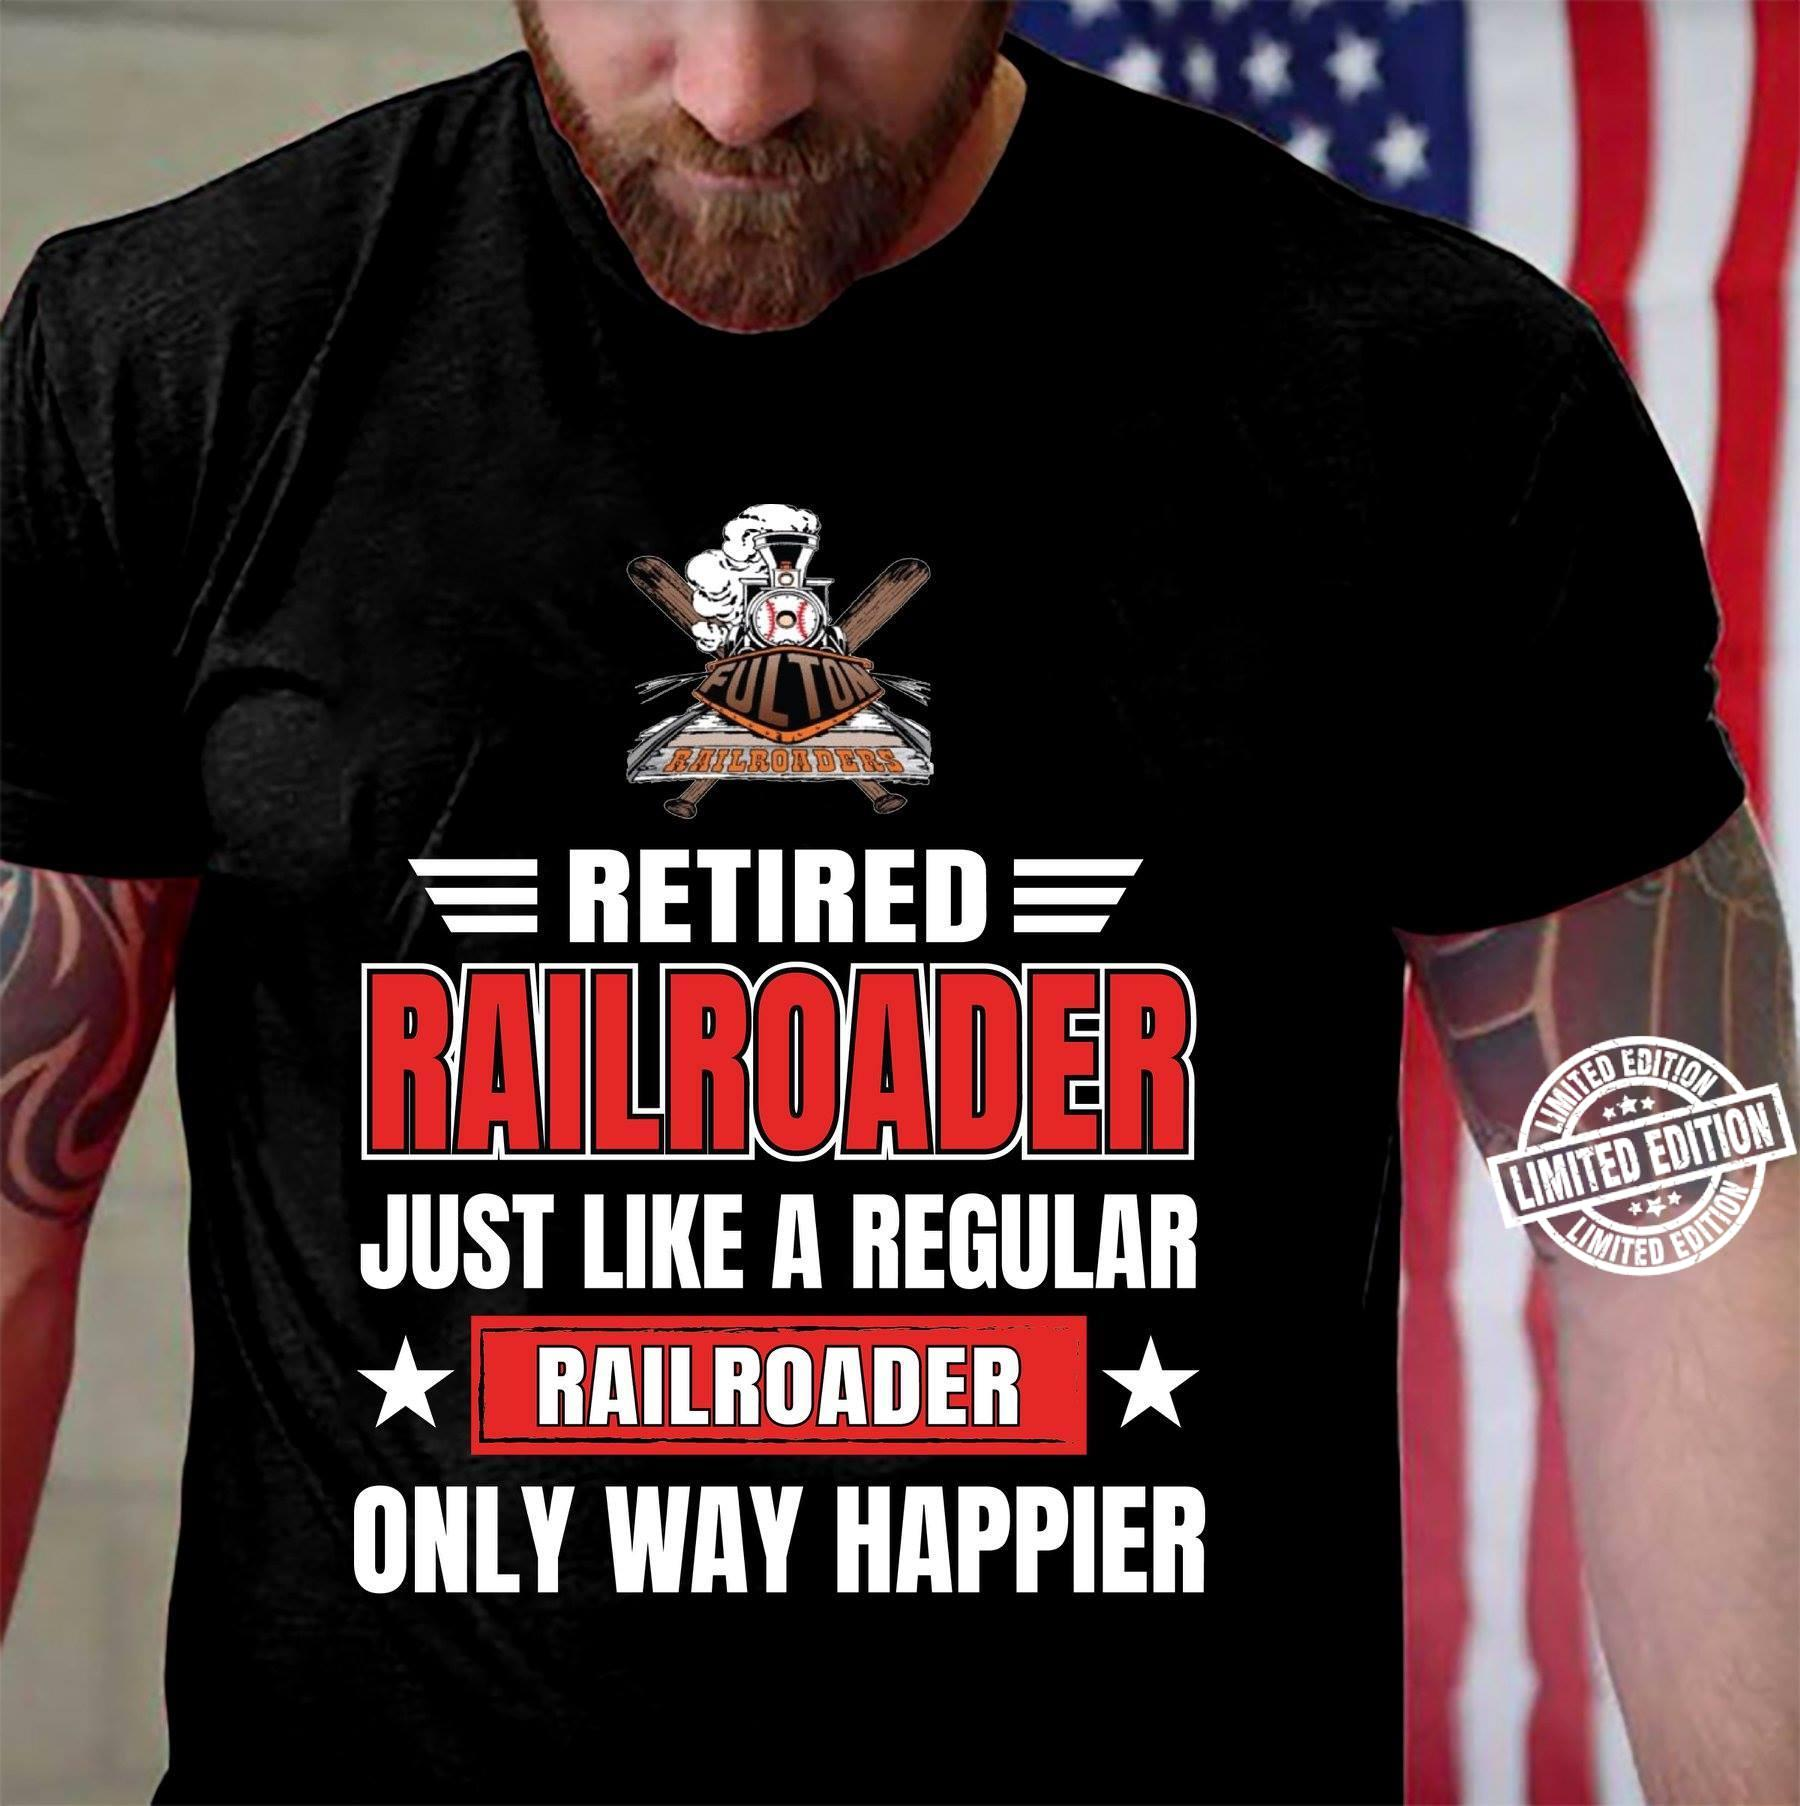 Retired railroader just like a regular only way happier shirt